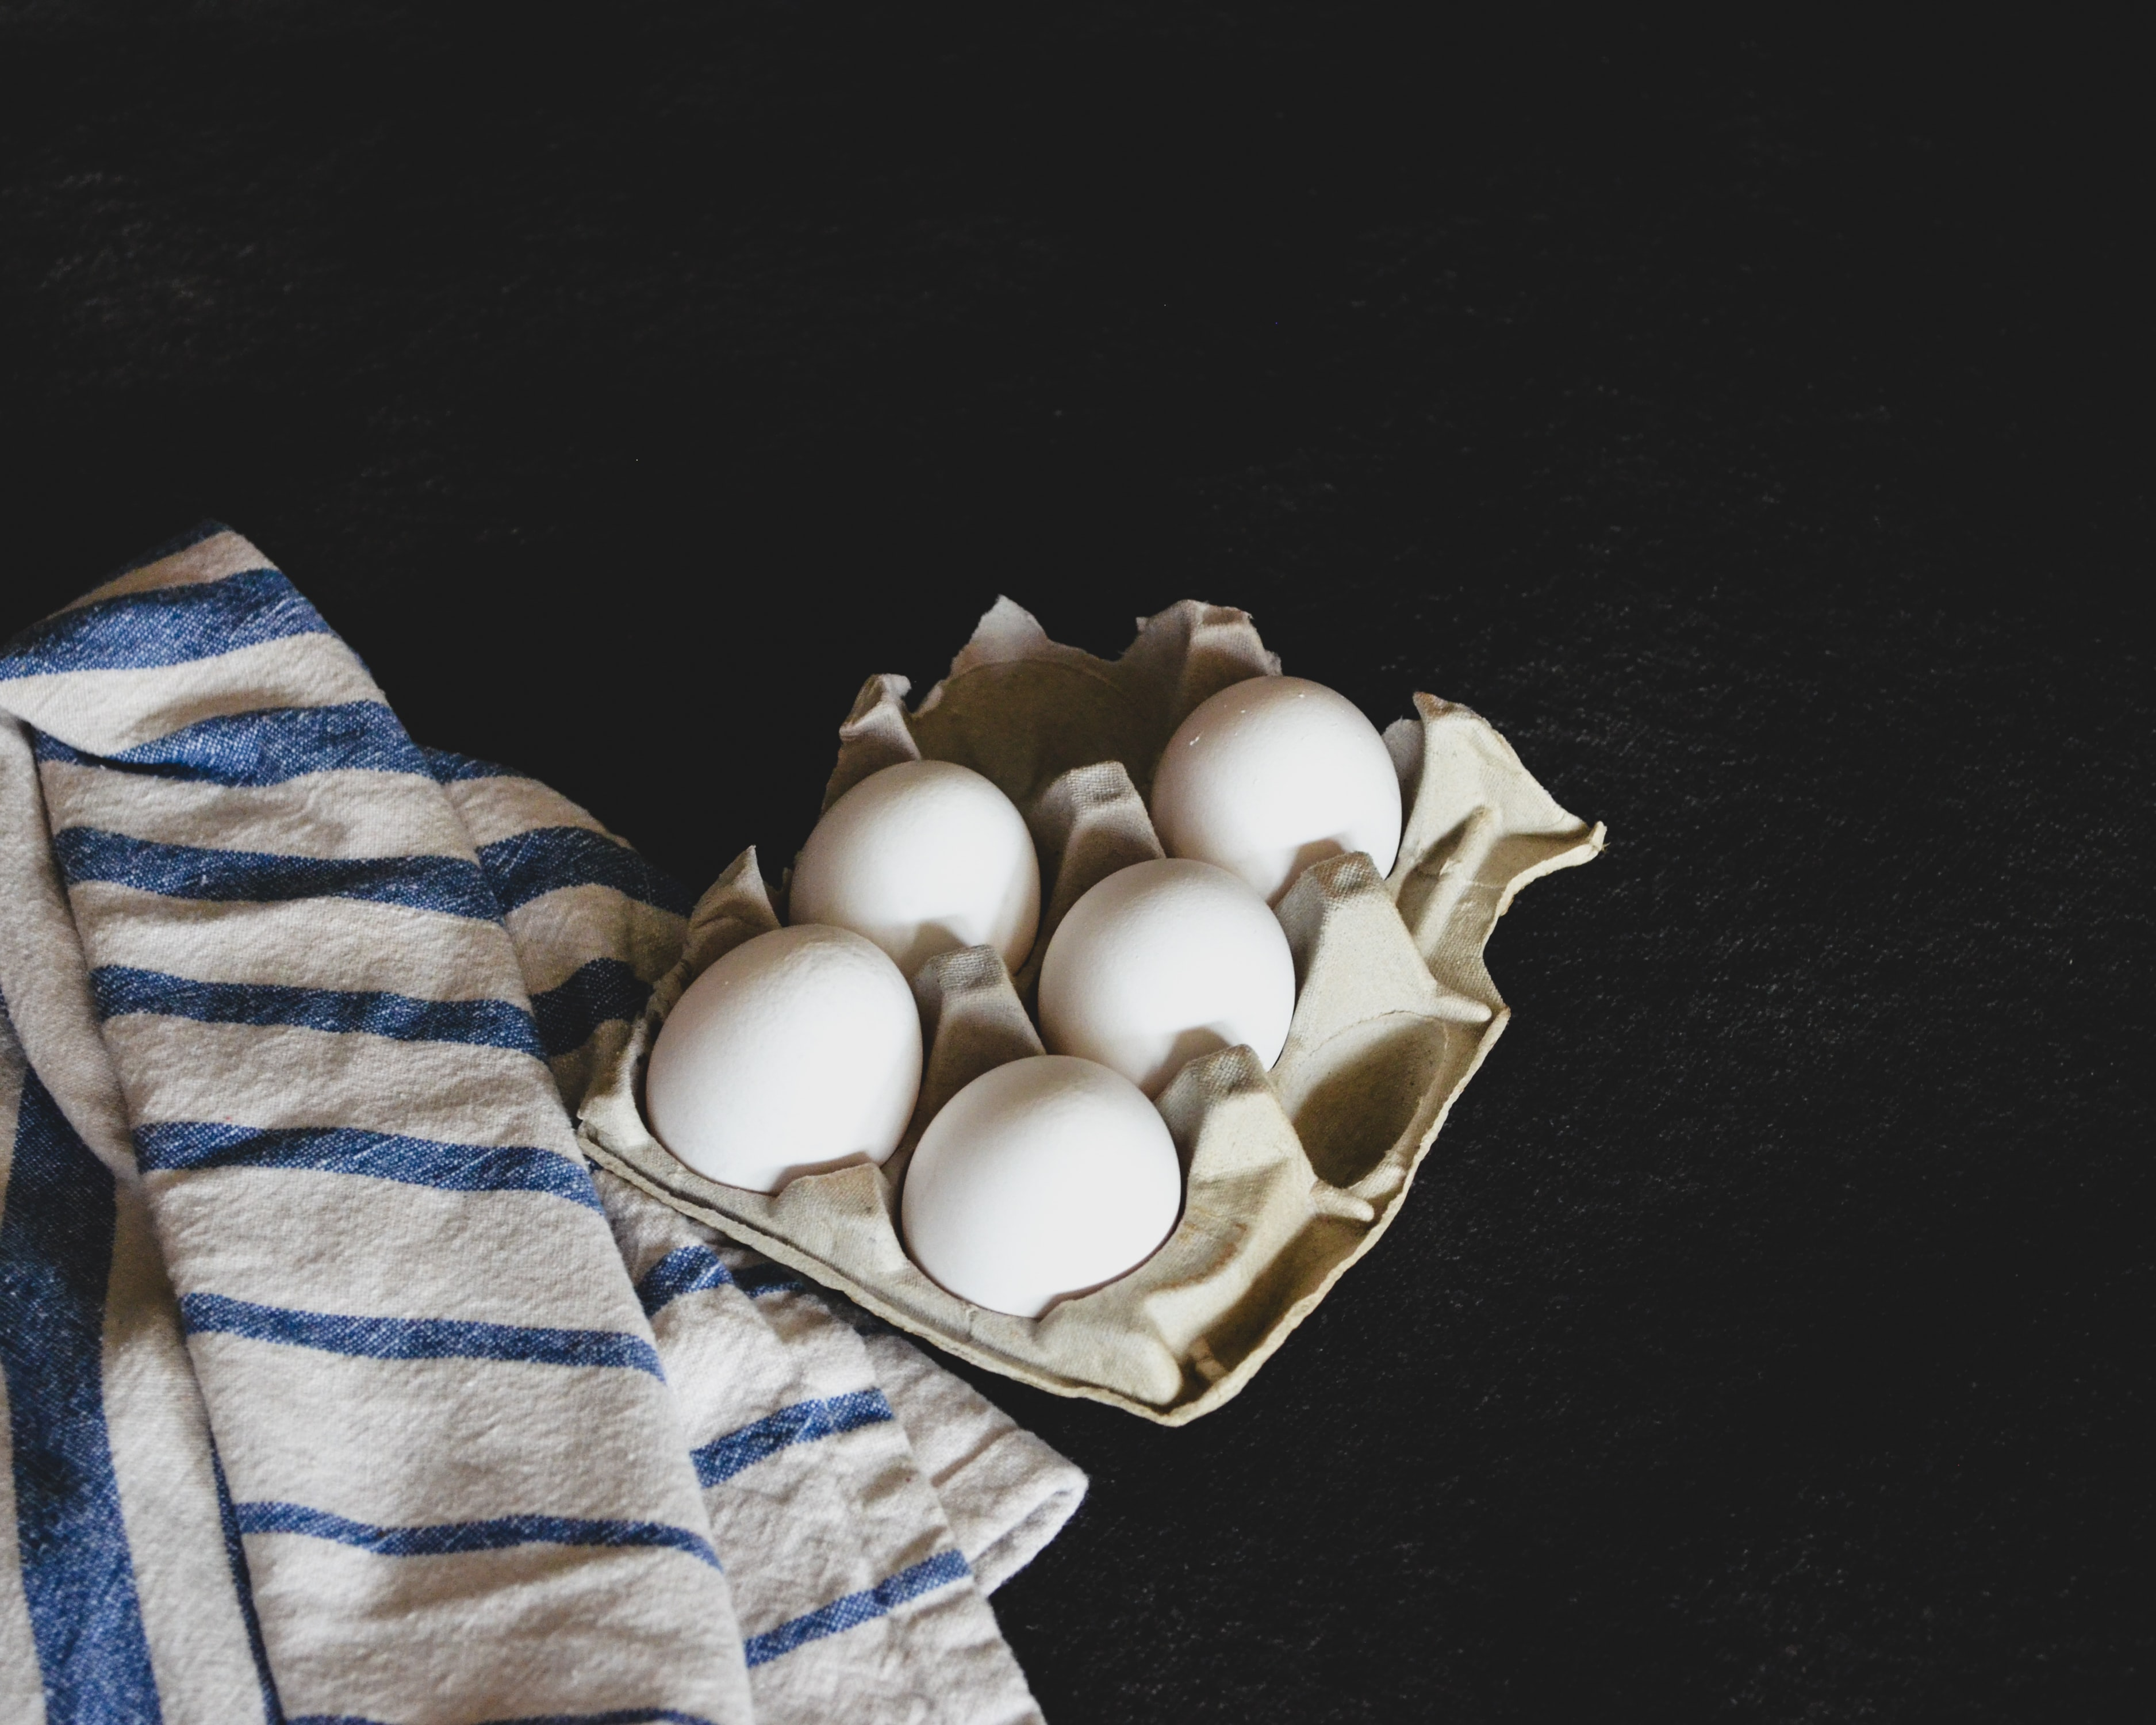 five eggs on brown carton tray